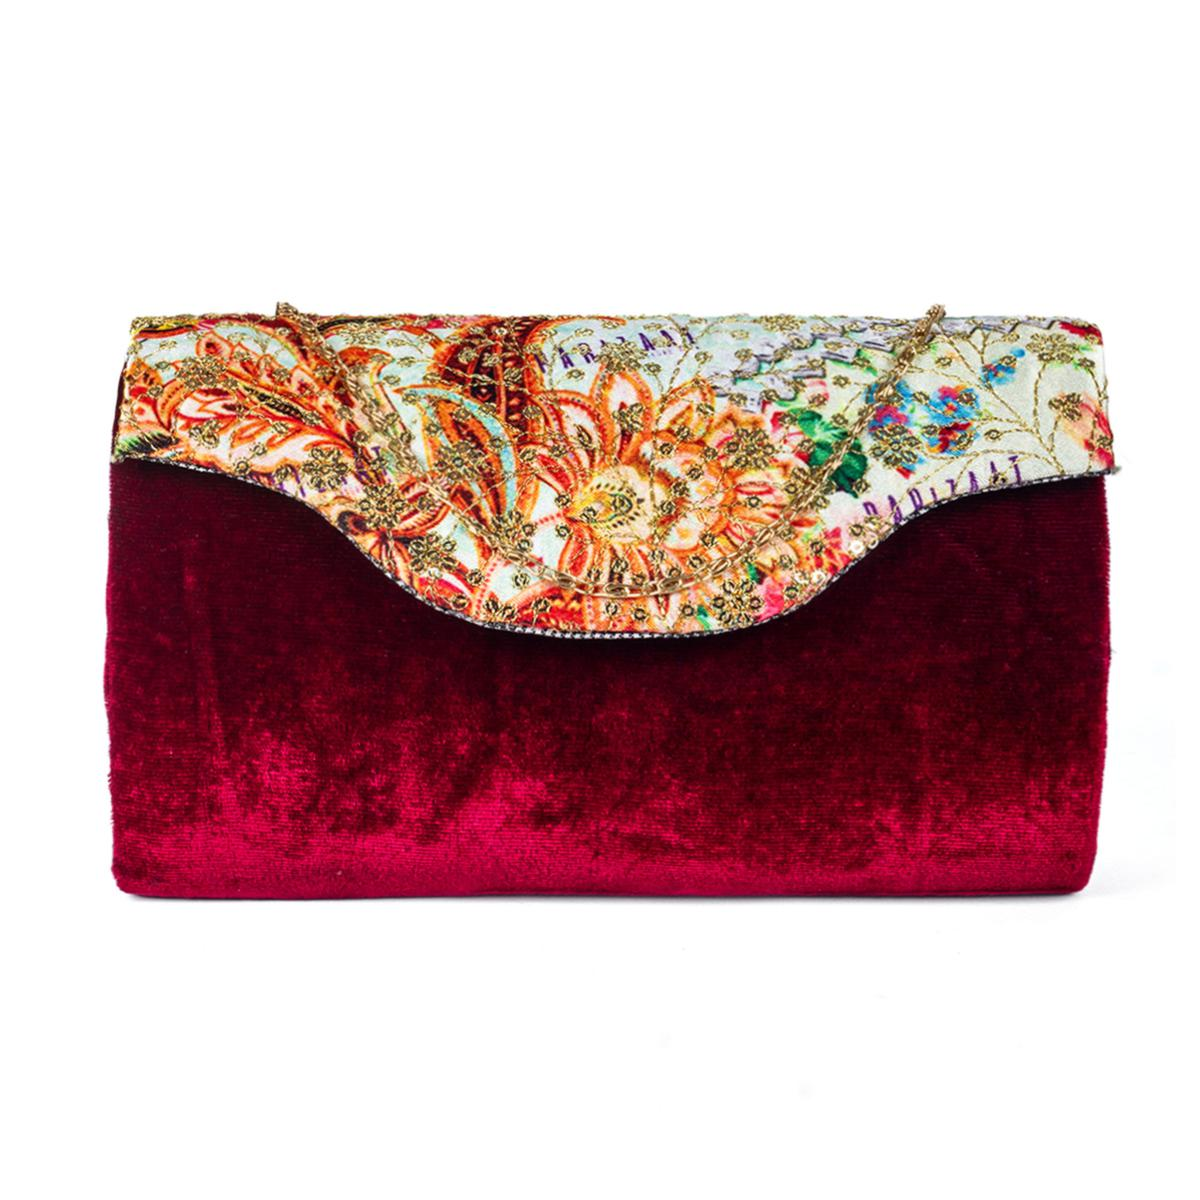 Imposing Maroon Colored Handcrafted Partywear Sequin Embroidered Velvet Sling Bag